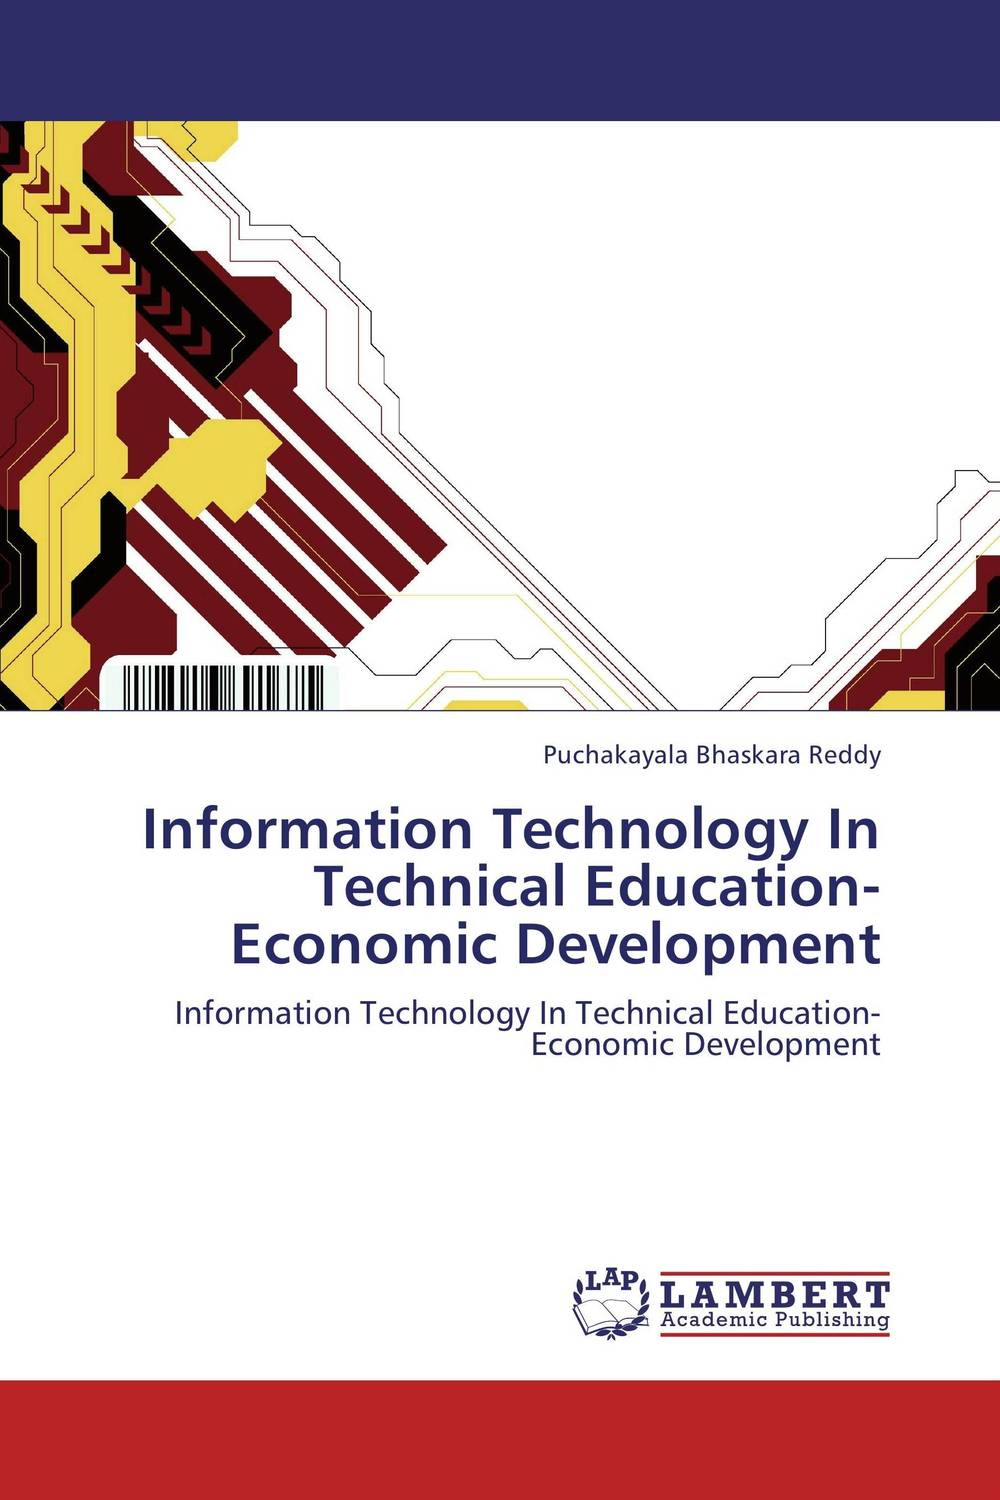 Information Technology In Technical Education-Economic Development industrial design education